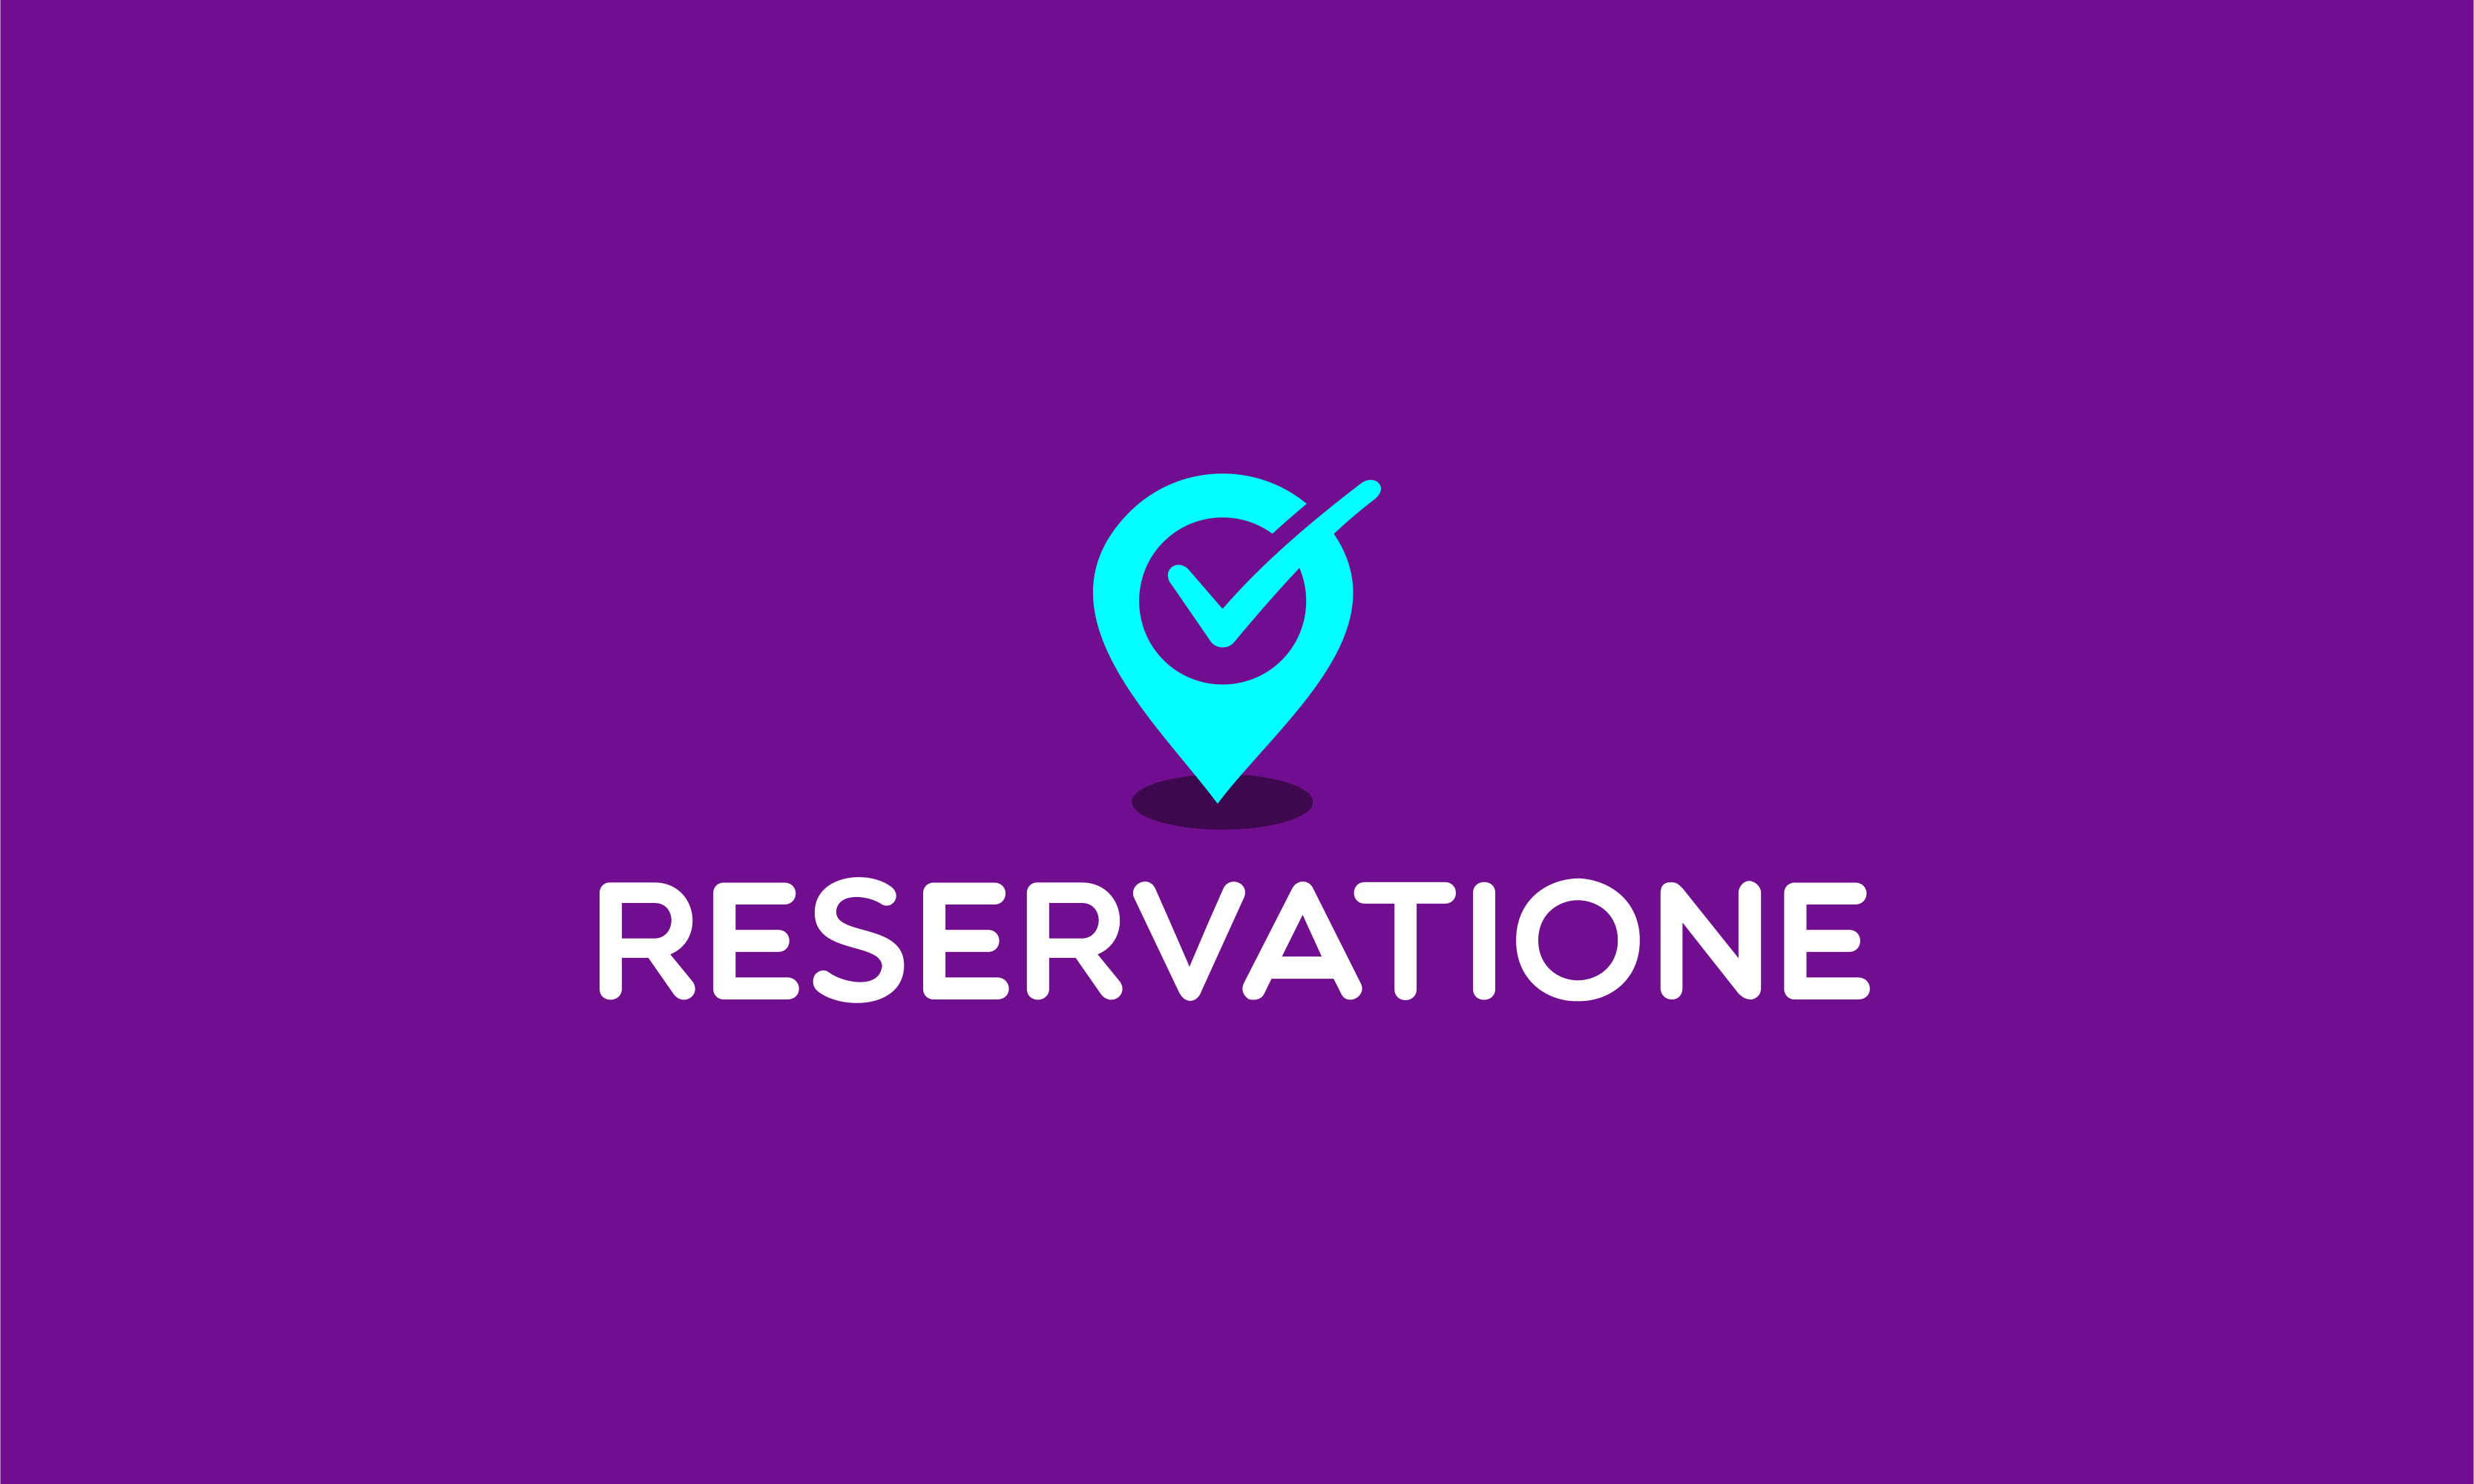 Reservatione